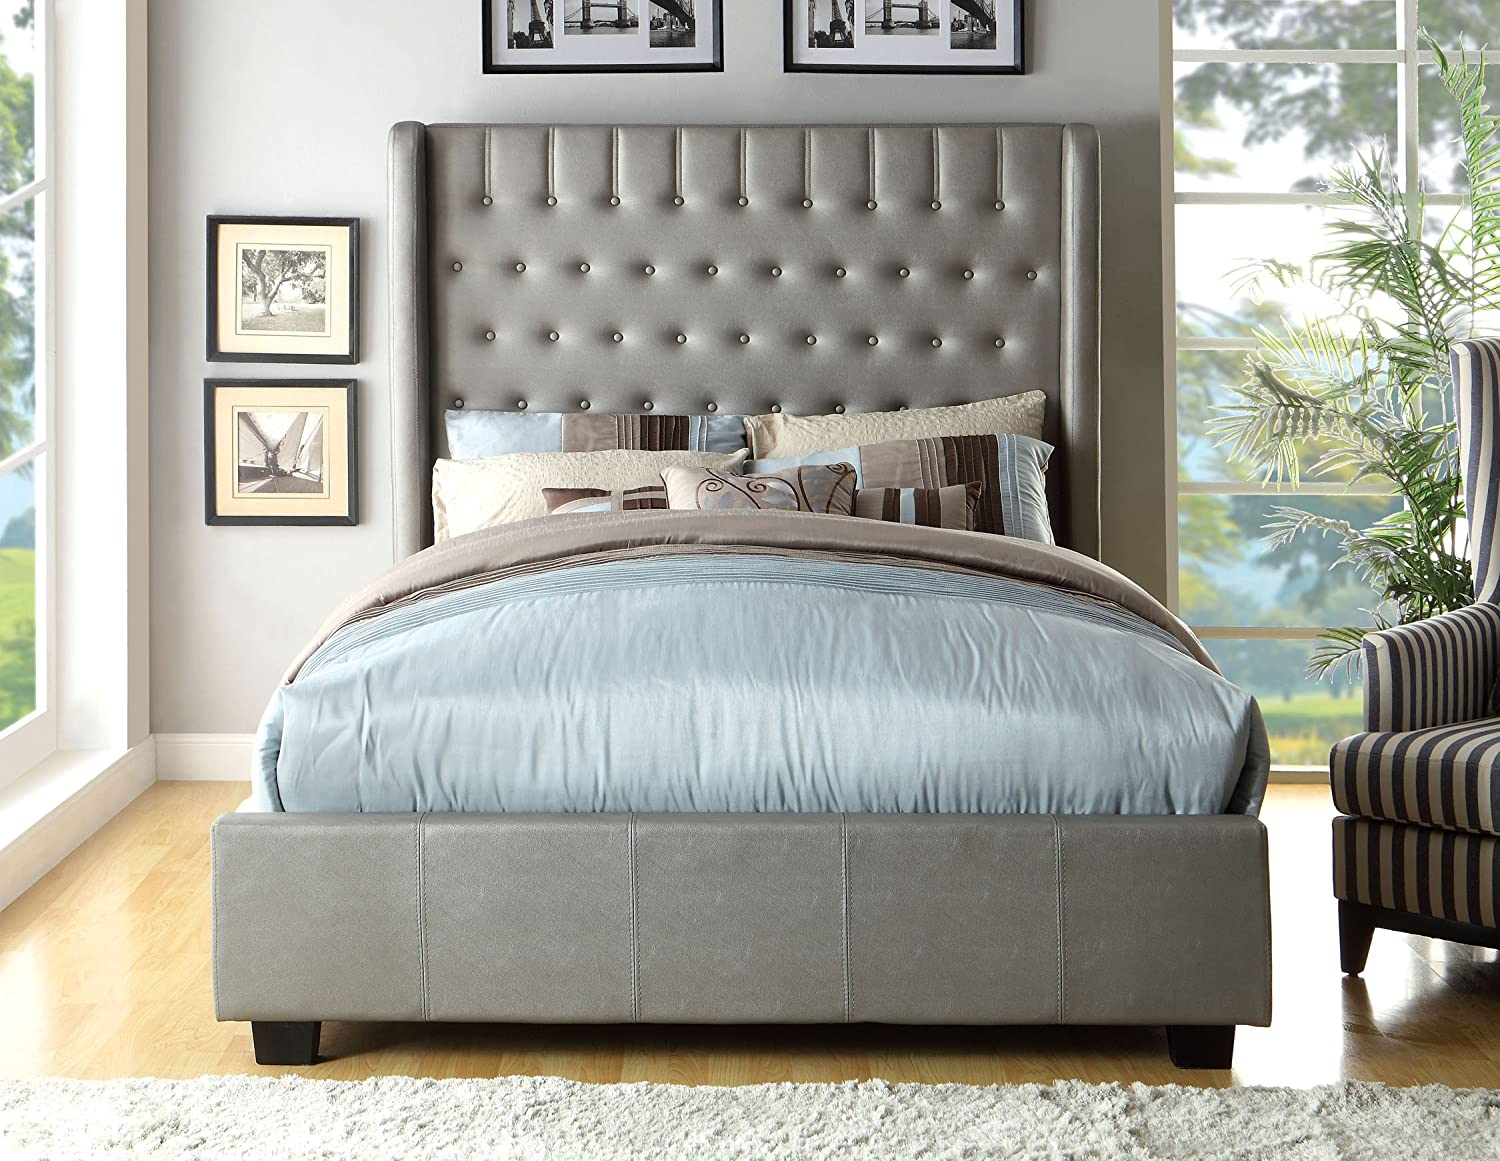 Amazon com  Furniture of America Minka Leatherette Platform Bed with High  Panel Headboard  Eastern King  Silver  Kitchen   Dining. Amazon com  Furniture of America Minka Leatherette Platform Bed